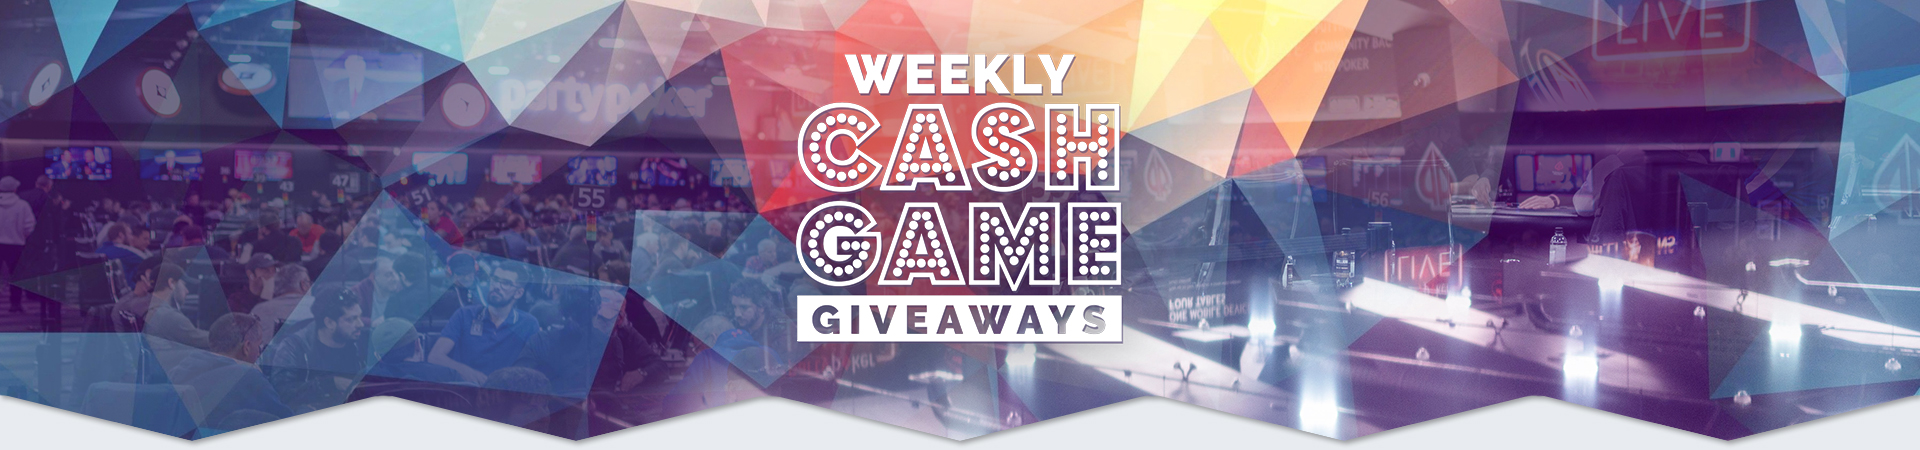 Playground's Weekly Cash Game Giveaways